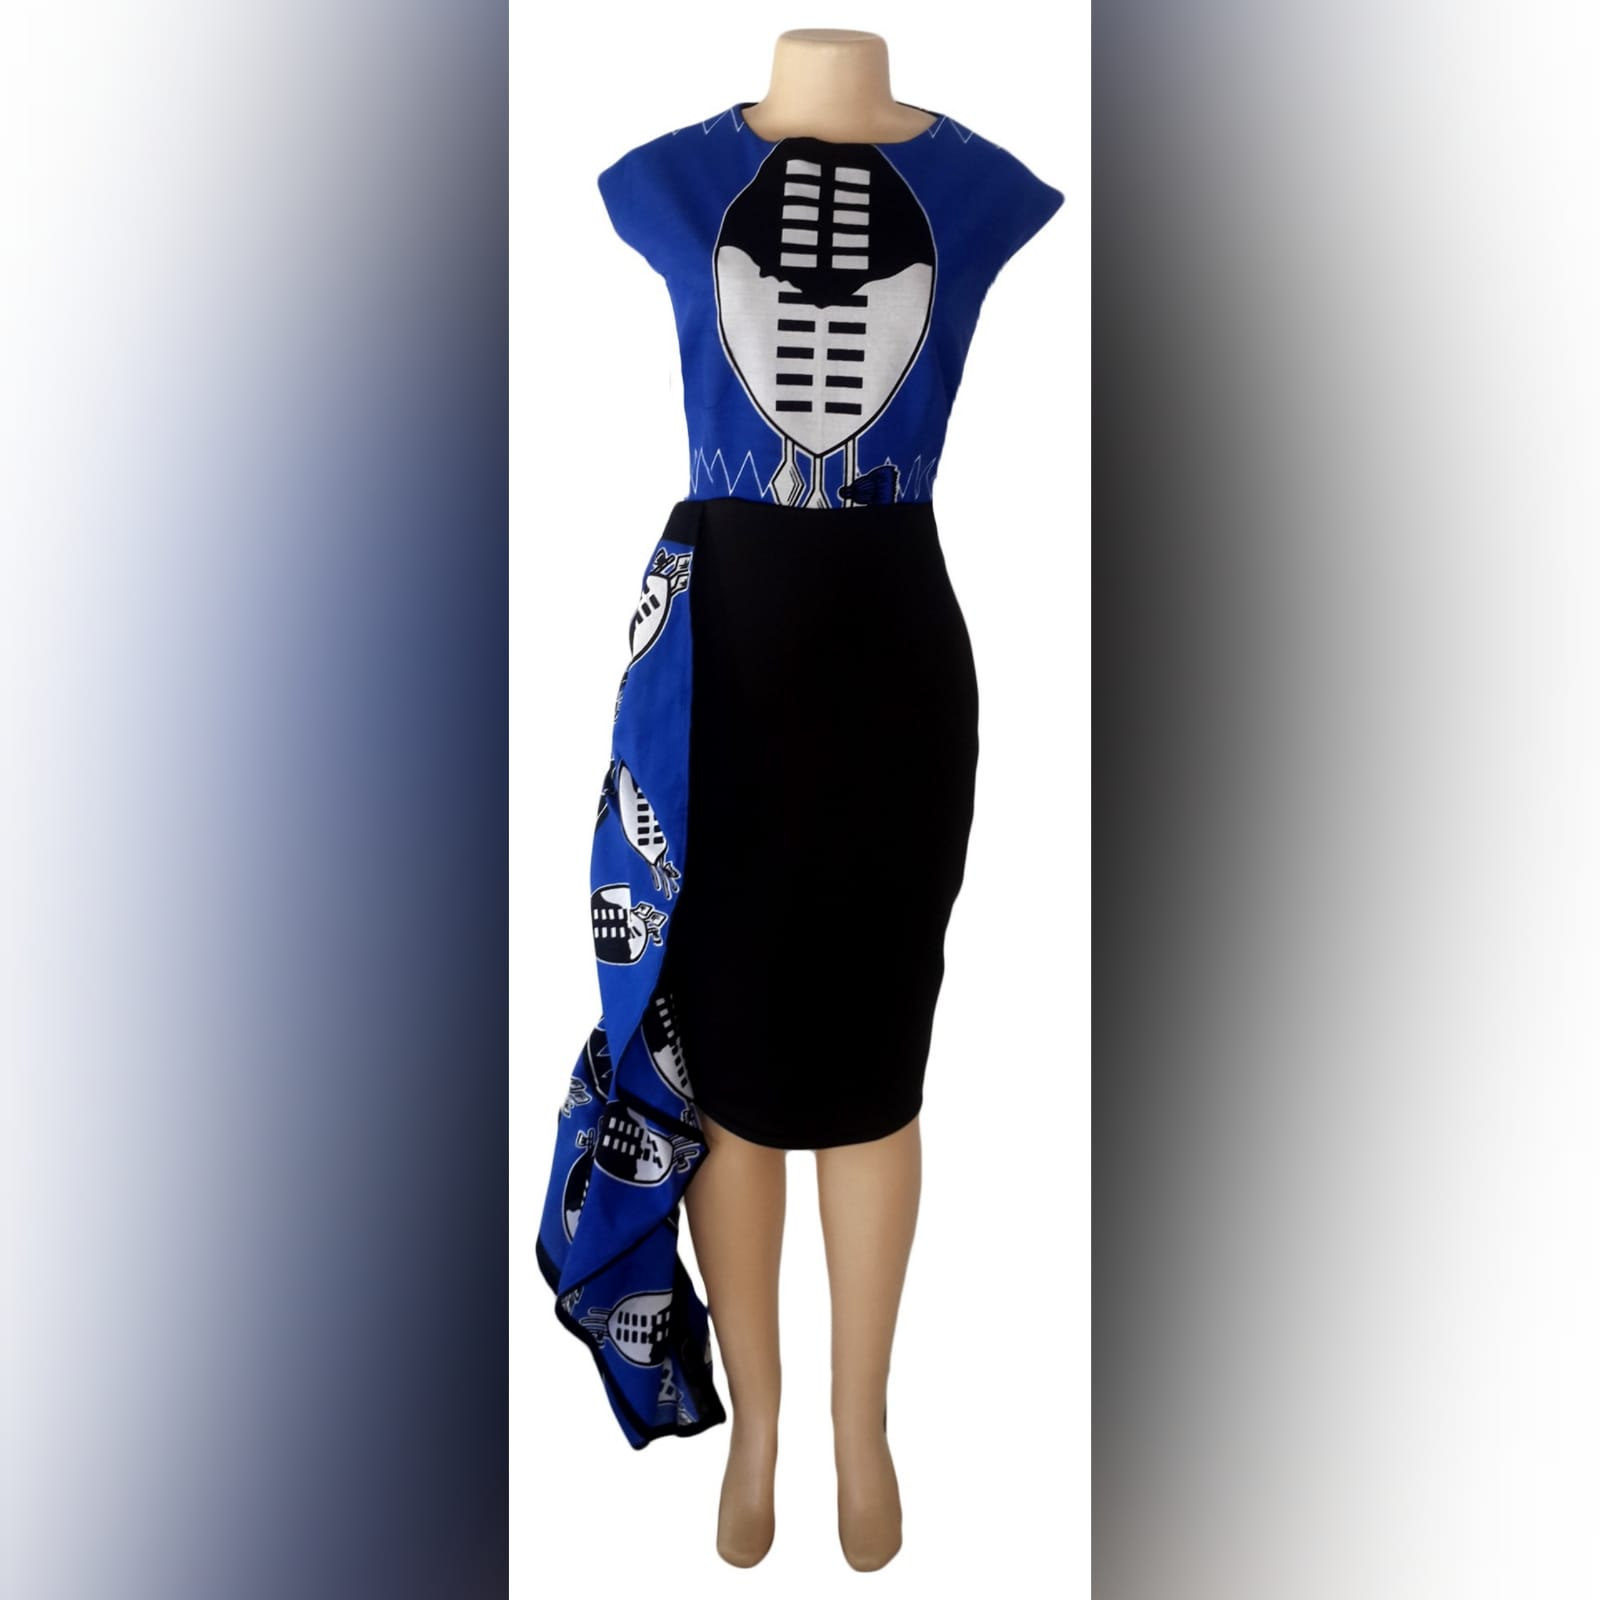 Blue swati knee length dress with hip frill 8 modern traditional knee-length fitted swati dress in blue, black and white. With a hip frill. With matching black golf shirt detailed with swati fabric. Traditional wedding attire.